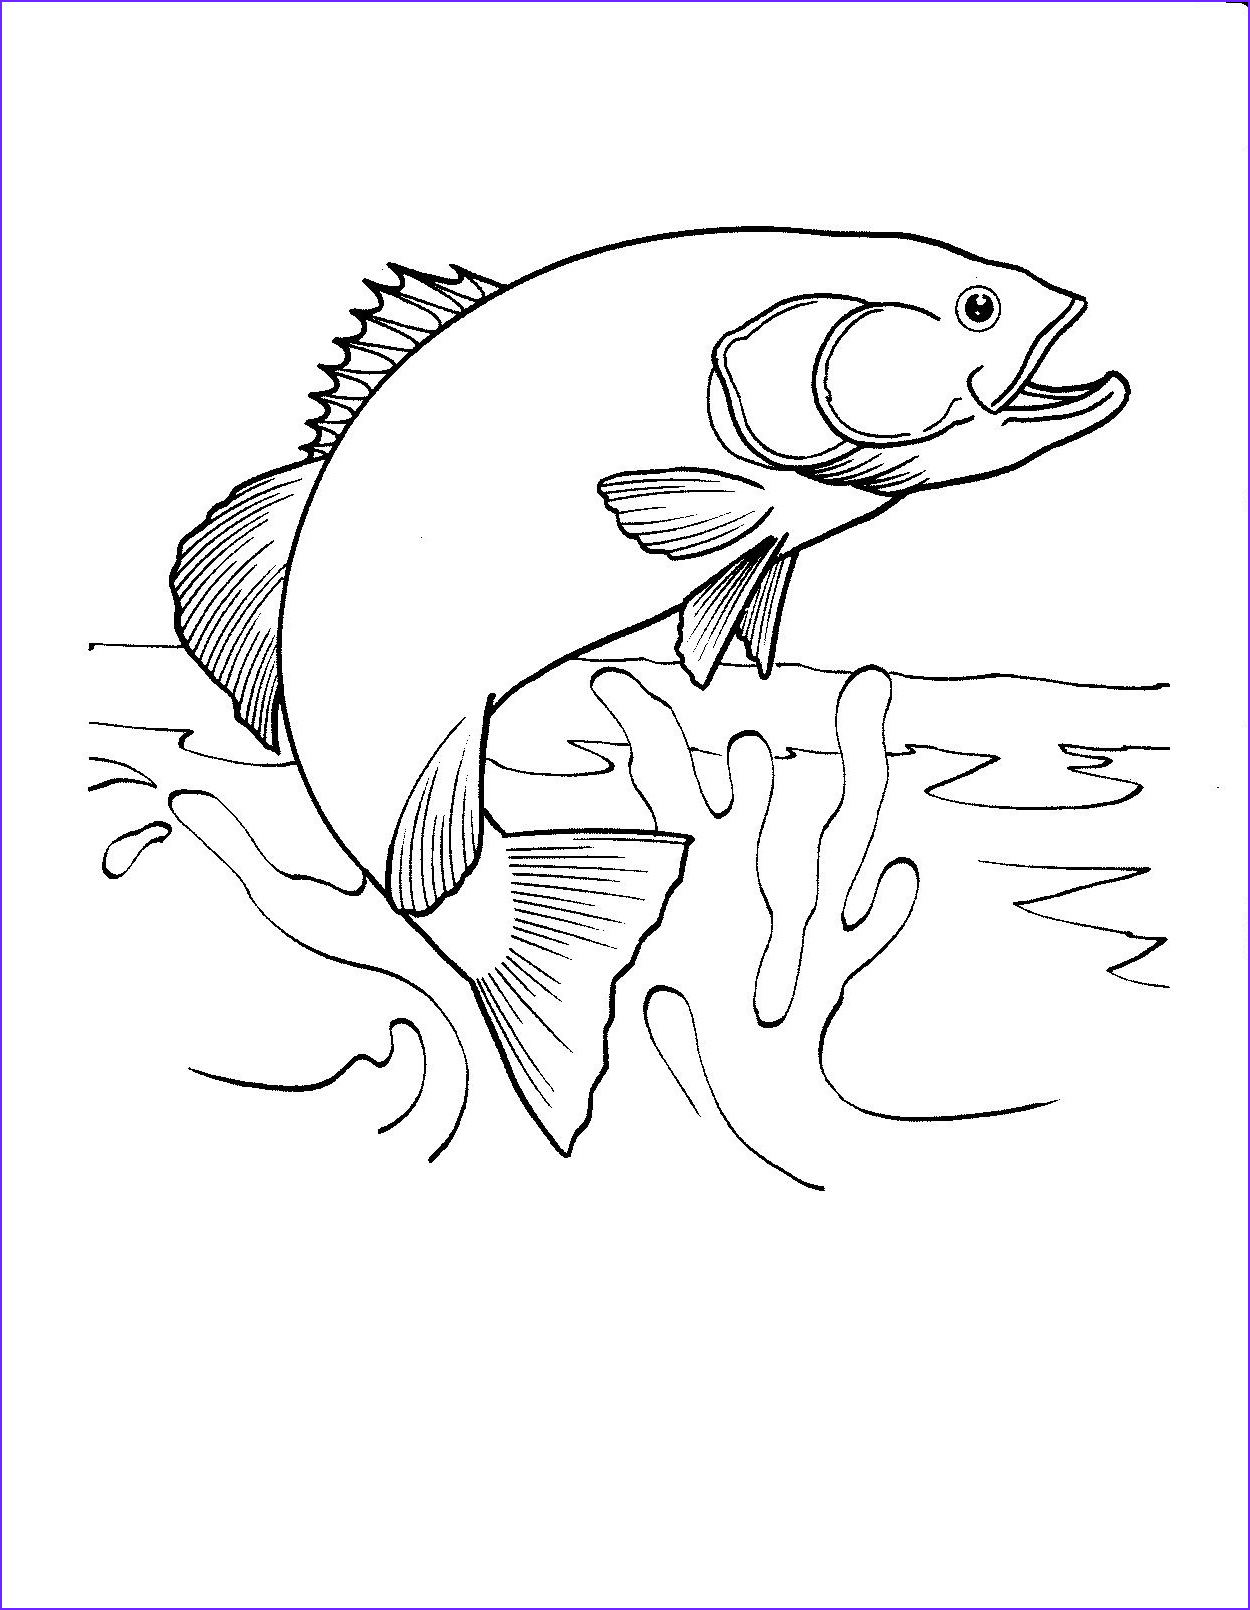 Fish Coloring Inspirational Photos Printable Fish Coloring Pages